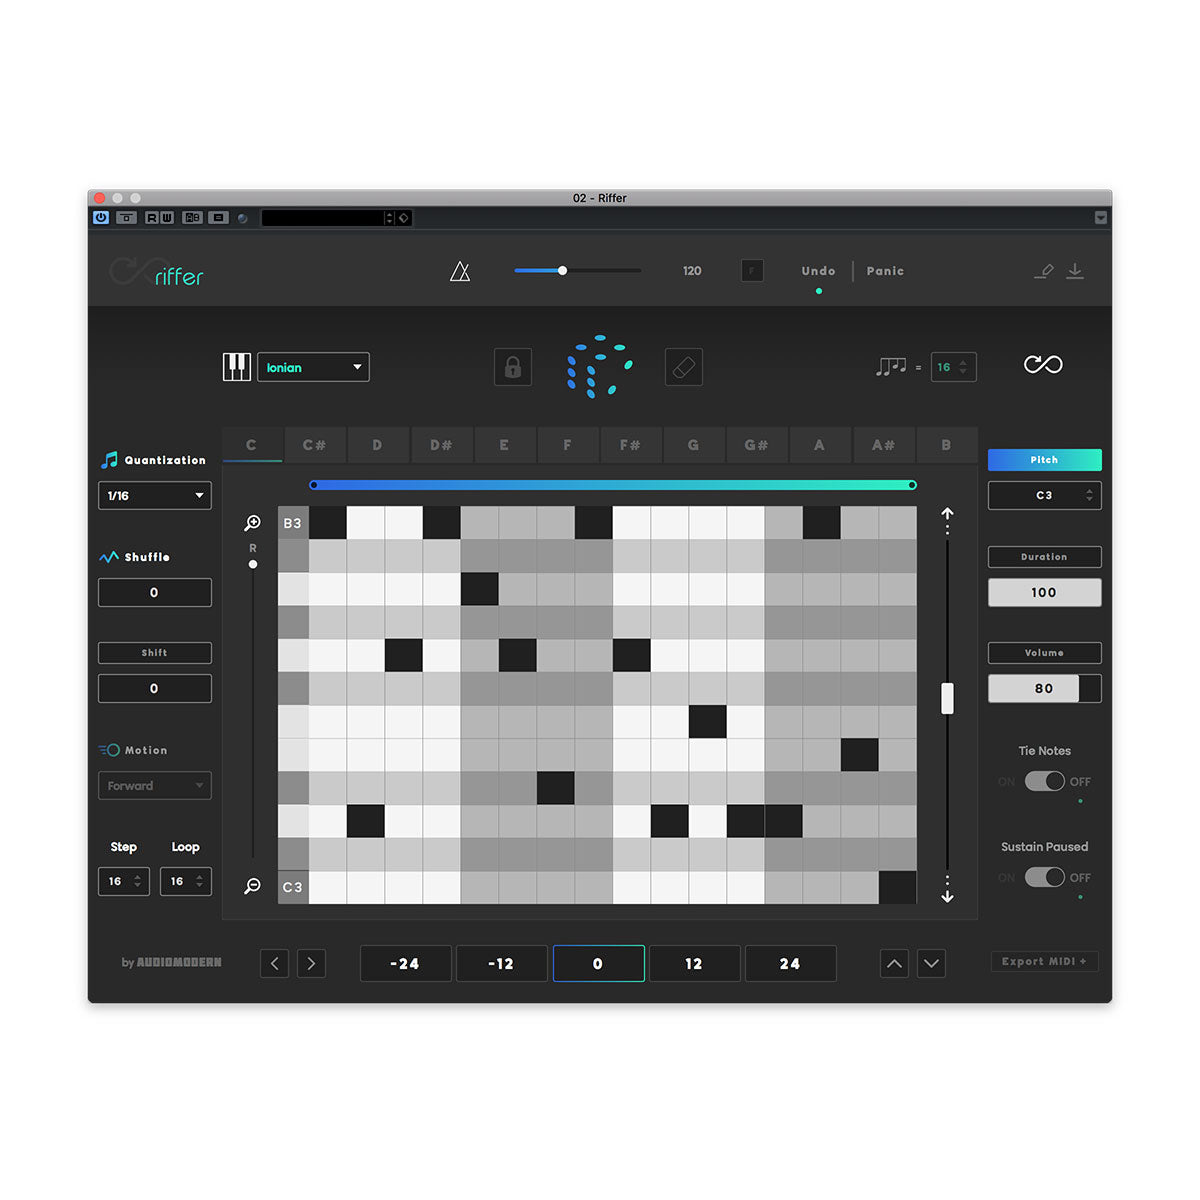 IZotope Neutron 3 Elements Mixing Software - Sounds Easy